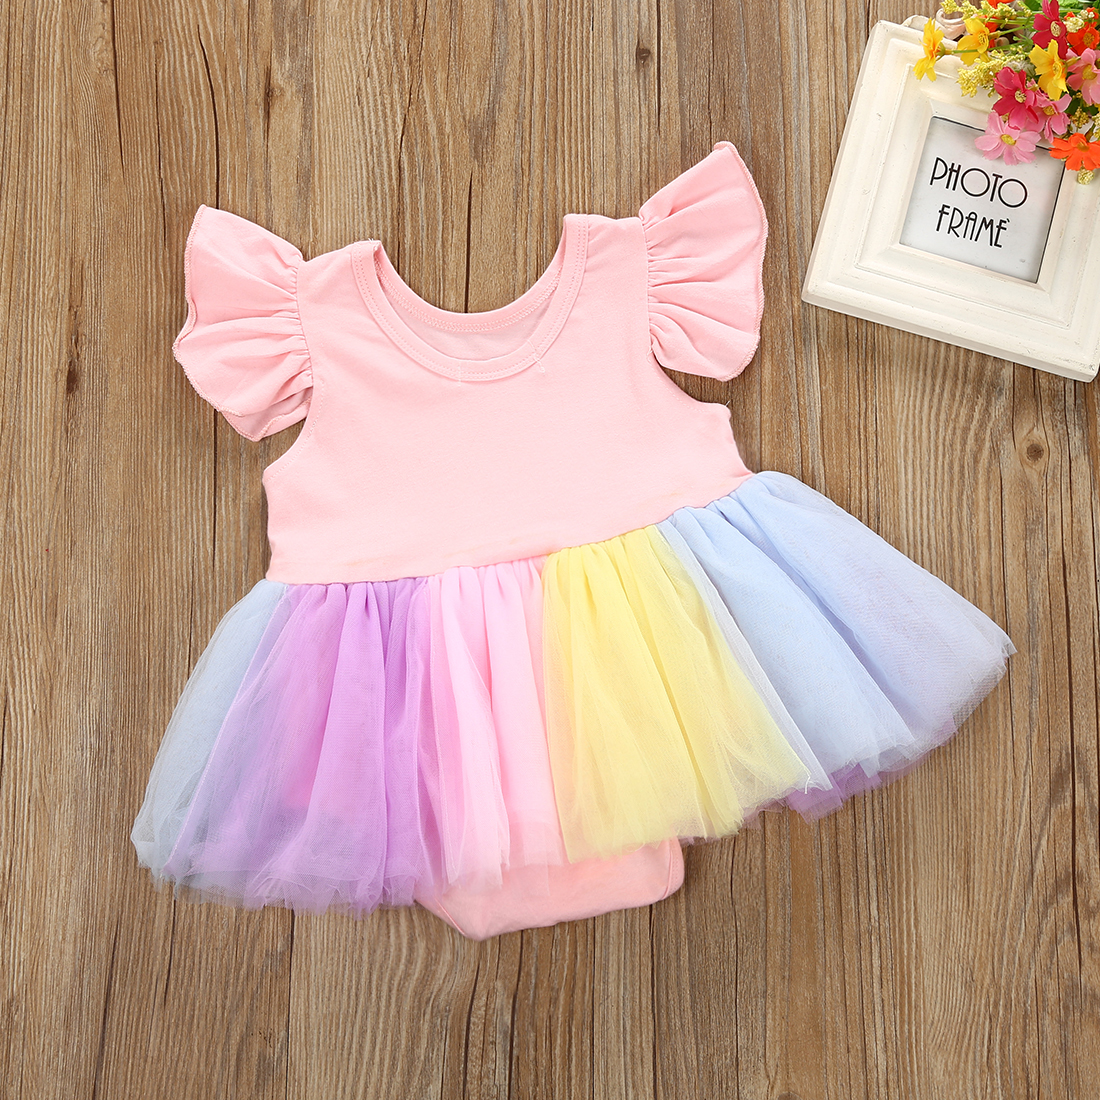 879580caa9f7 Emmababy Cute princess Dress Newborn Toddler Baby Girls Unicorn Lace Tutu  Fly Sleeve Romper Jumpsuit Fancy Dress Outfits Costume-in Rompers from  Mother ...